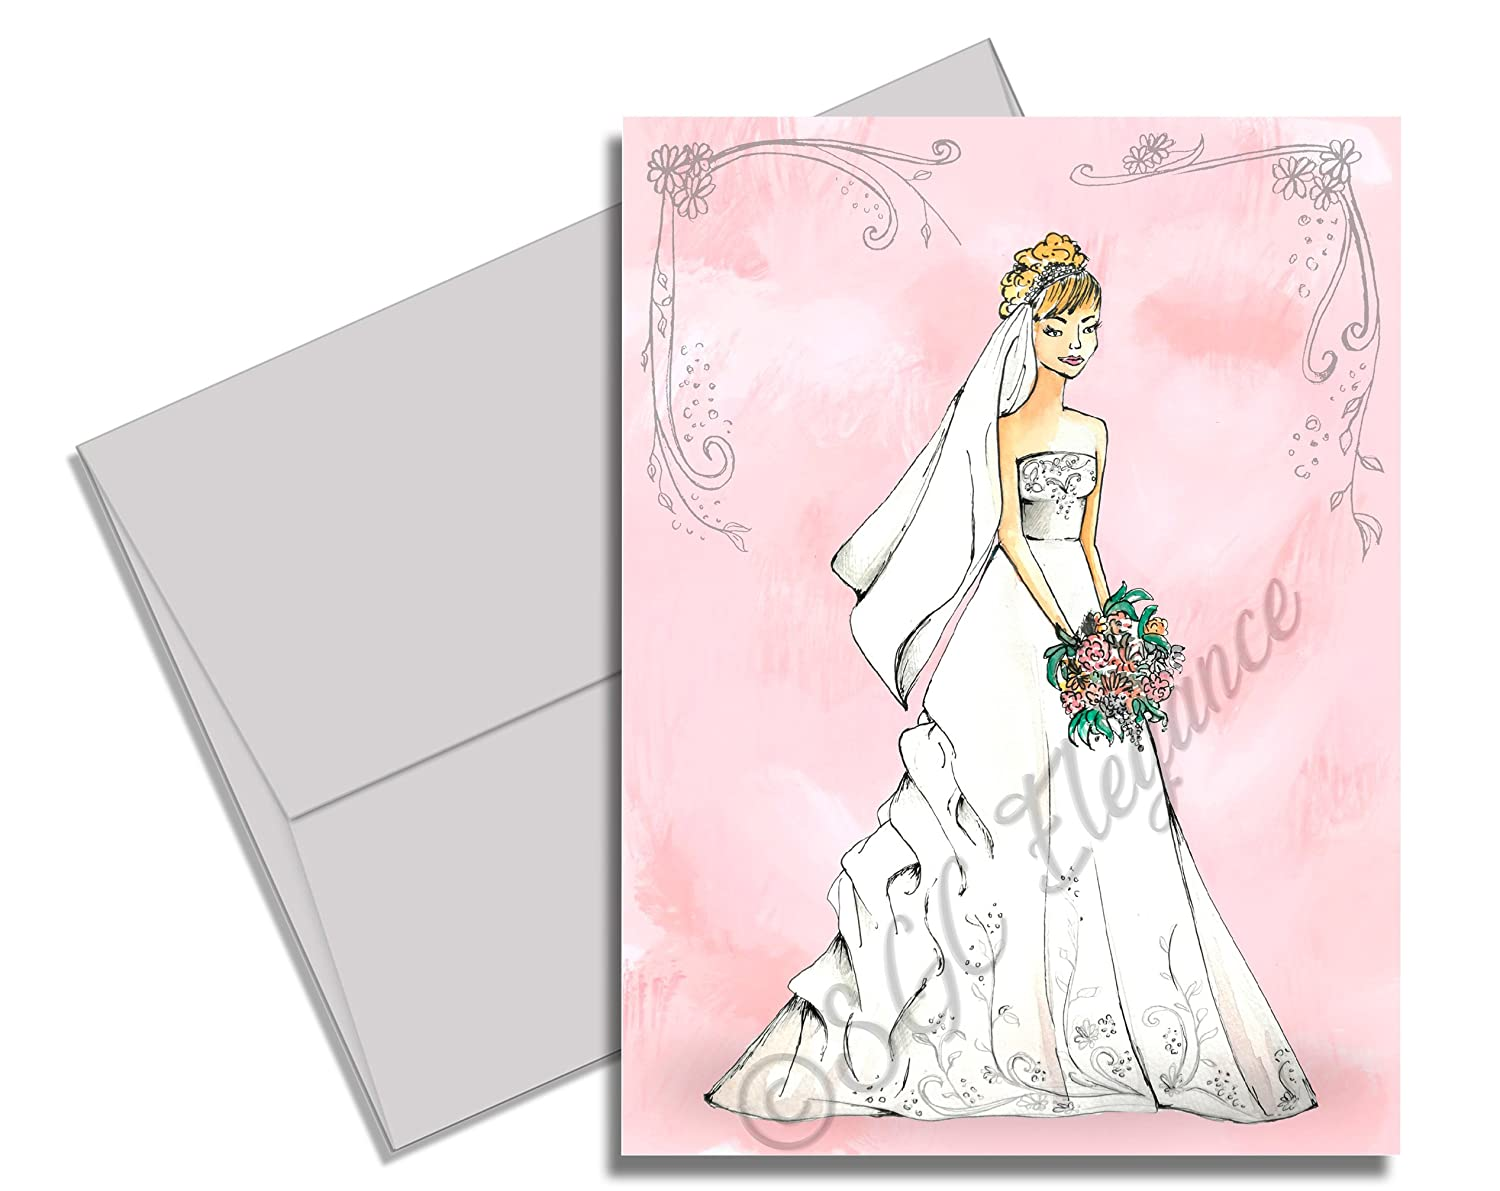 5 x 7 Fill-In Style Bridal Shower Invitations Pink Gray Printed on 14 pt Card Stock Elegant Bride w//light or dark hair Set of 20 Cards w//soft gray A7 Envelopes Watercolor Florals Dark Hair